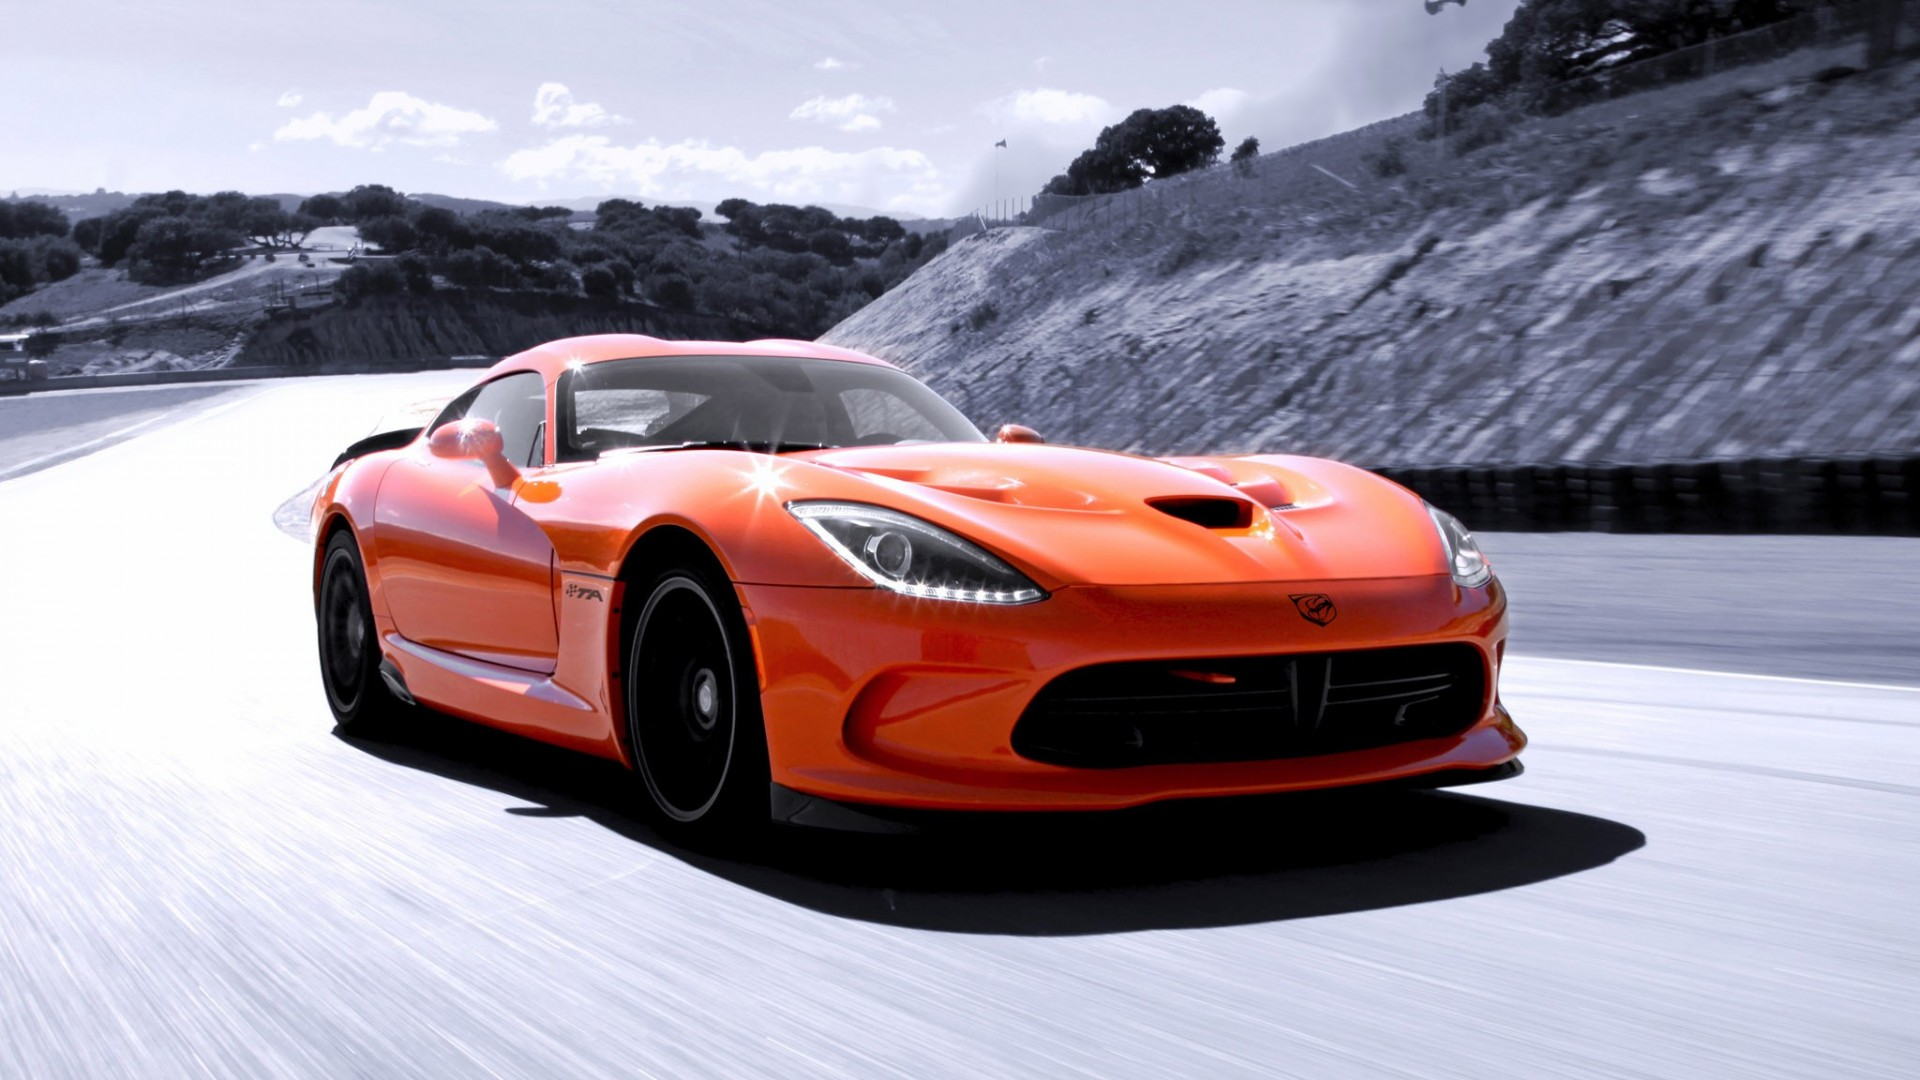 Dodge track speed srt viper orange sky supercar wallpaper